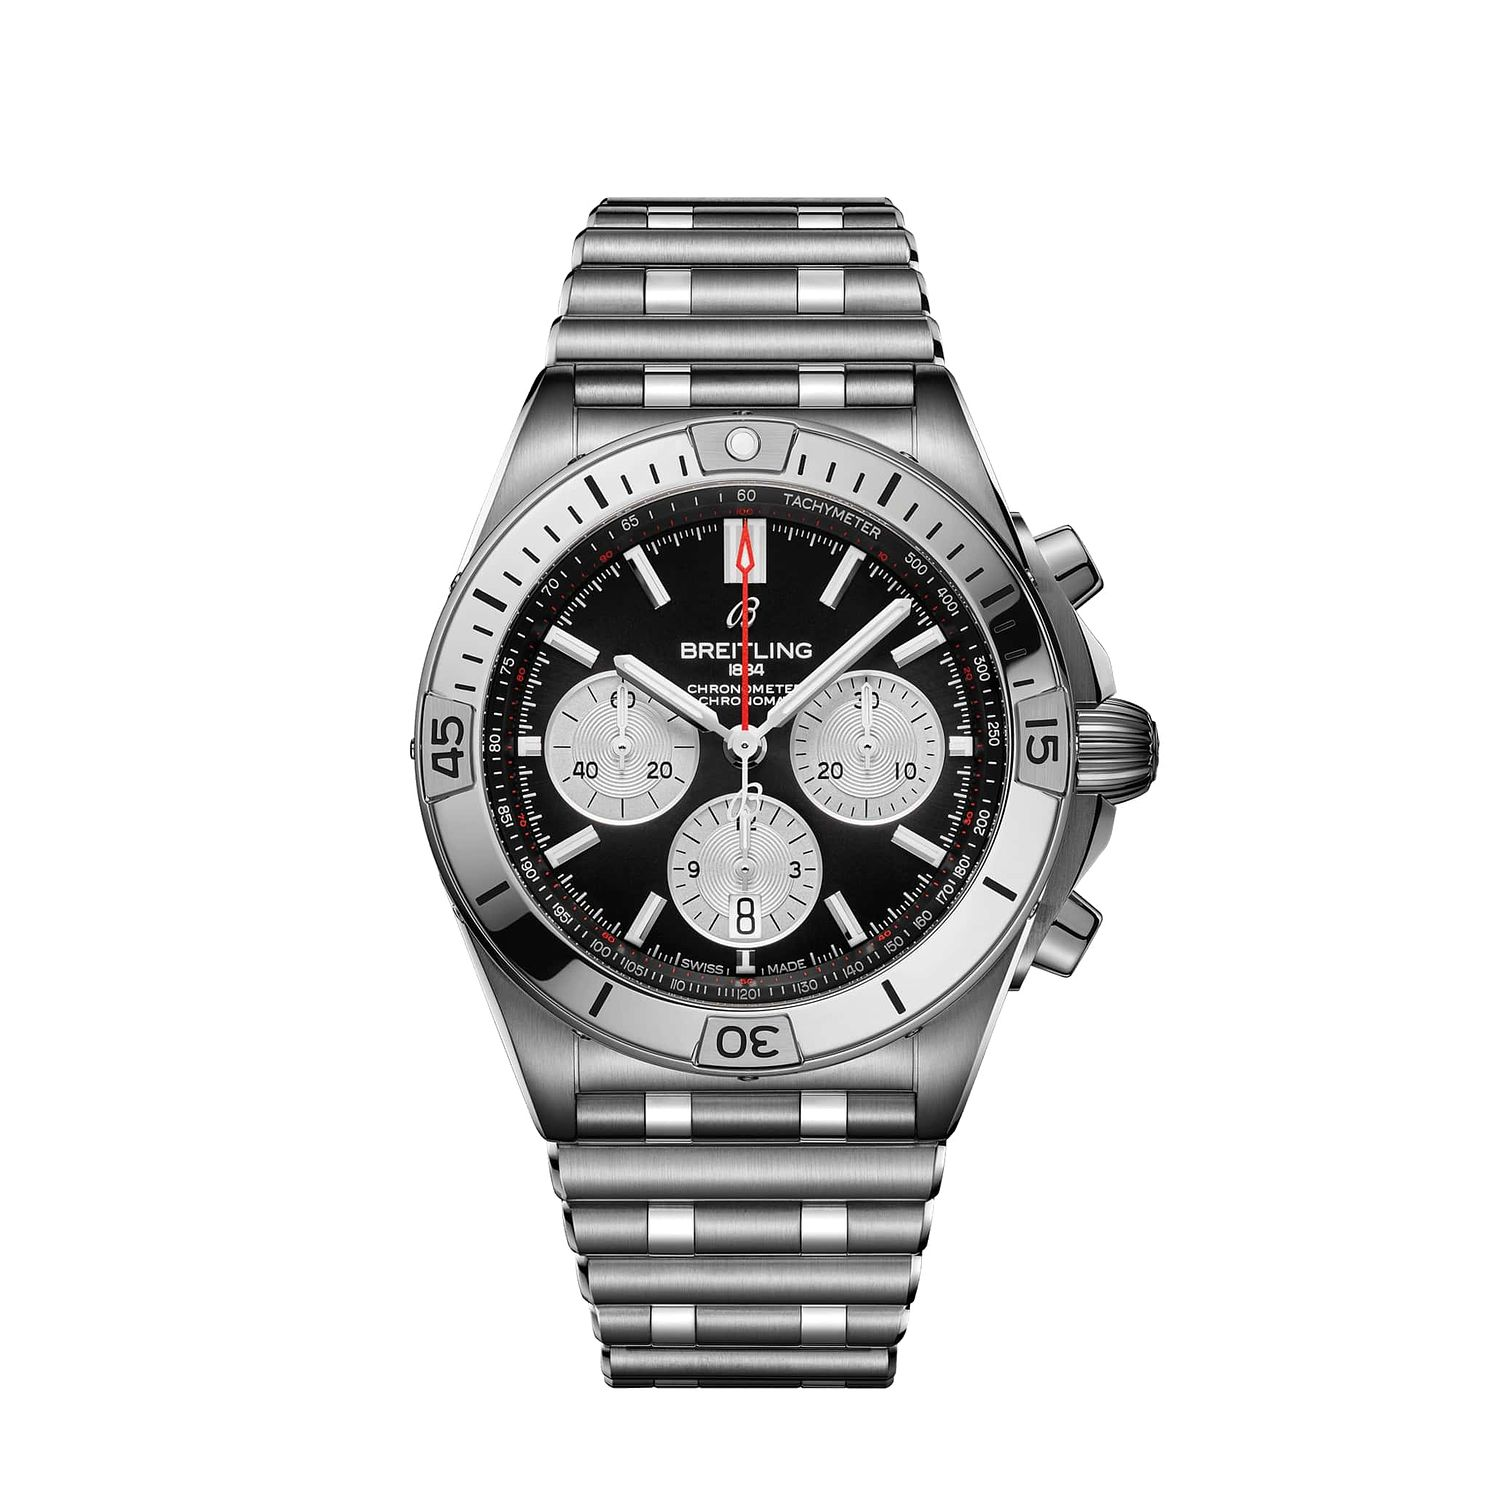 Breitling Chronomat Men's Stainless Steel Bracelet Watch - Product number 3863565